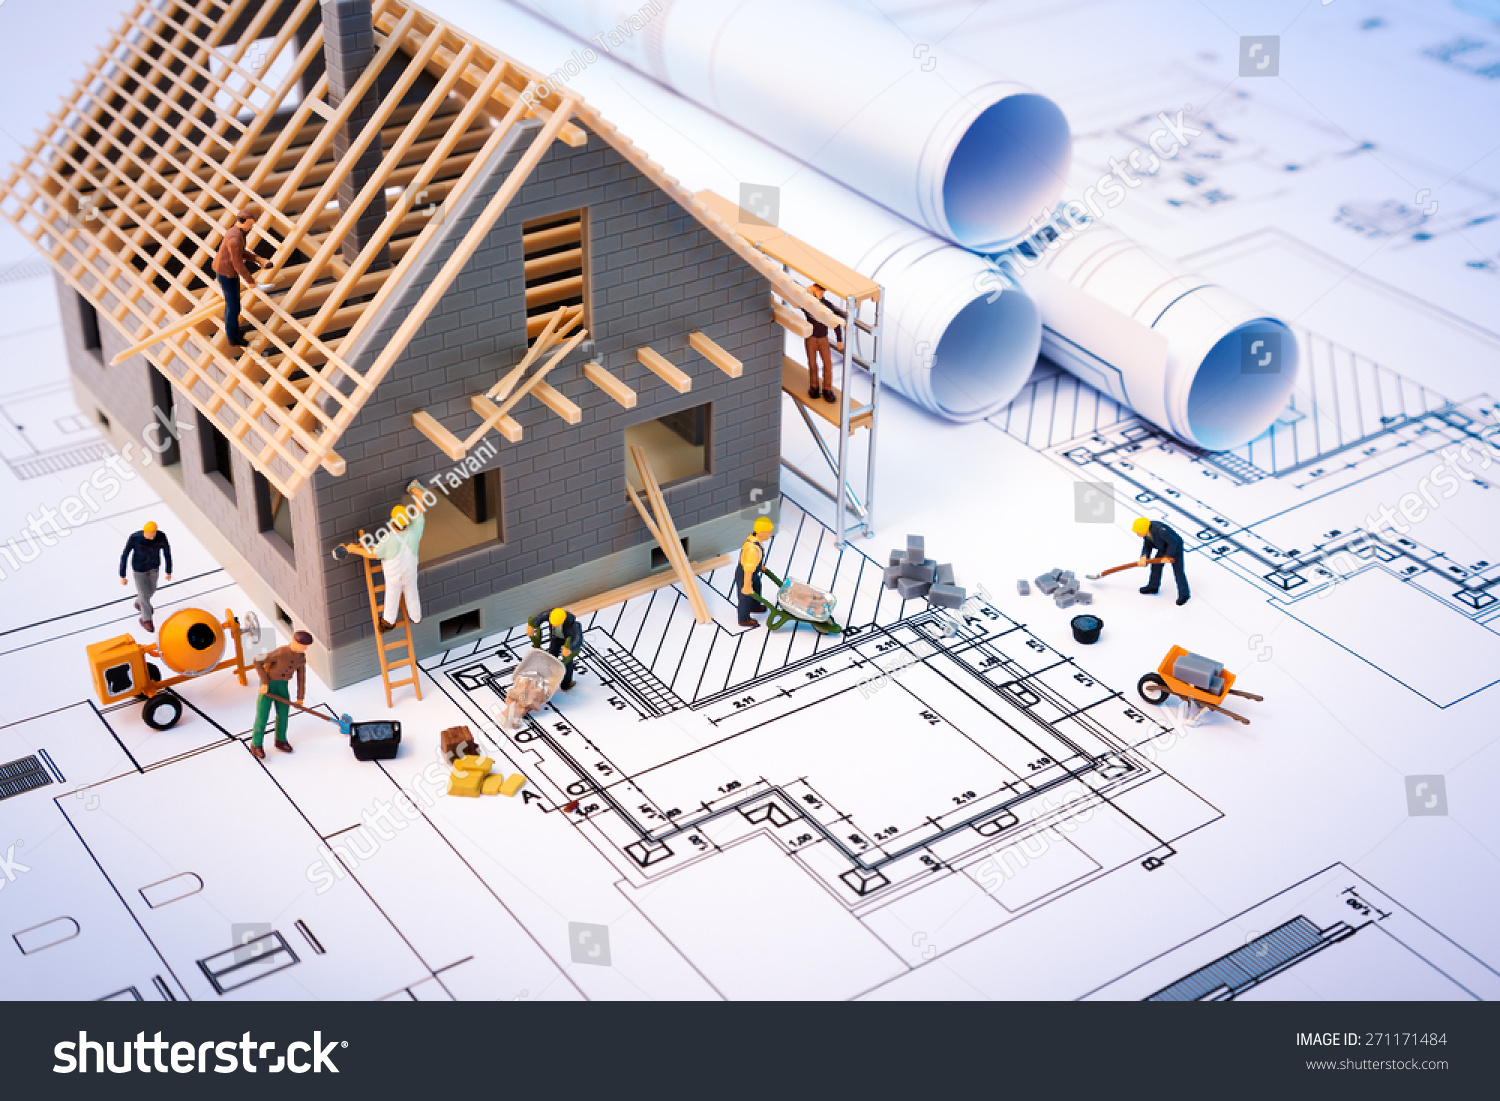 Building a house project plan